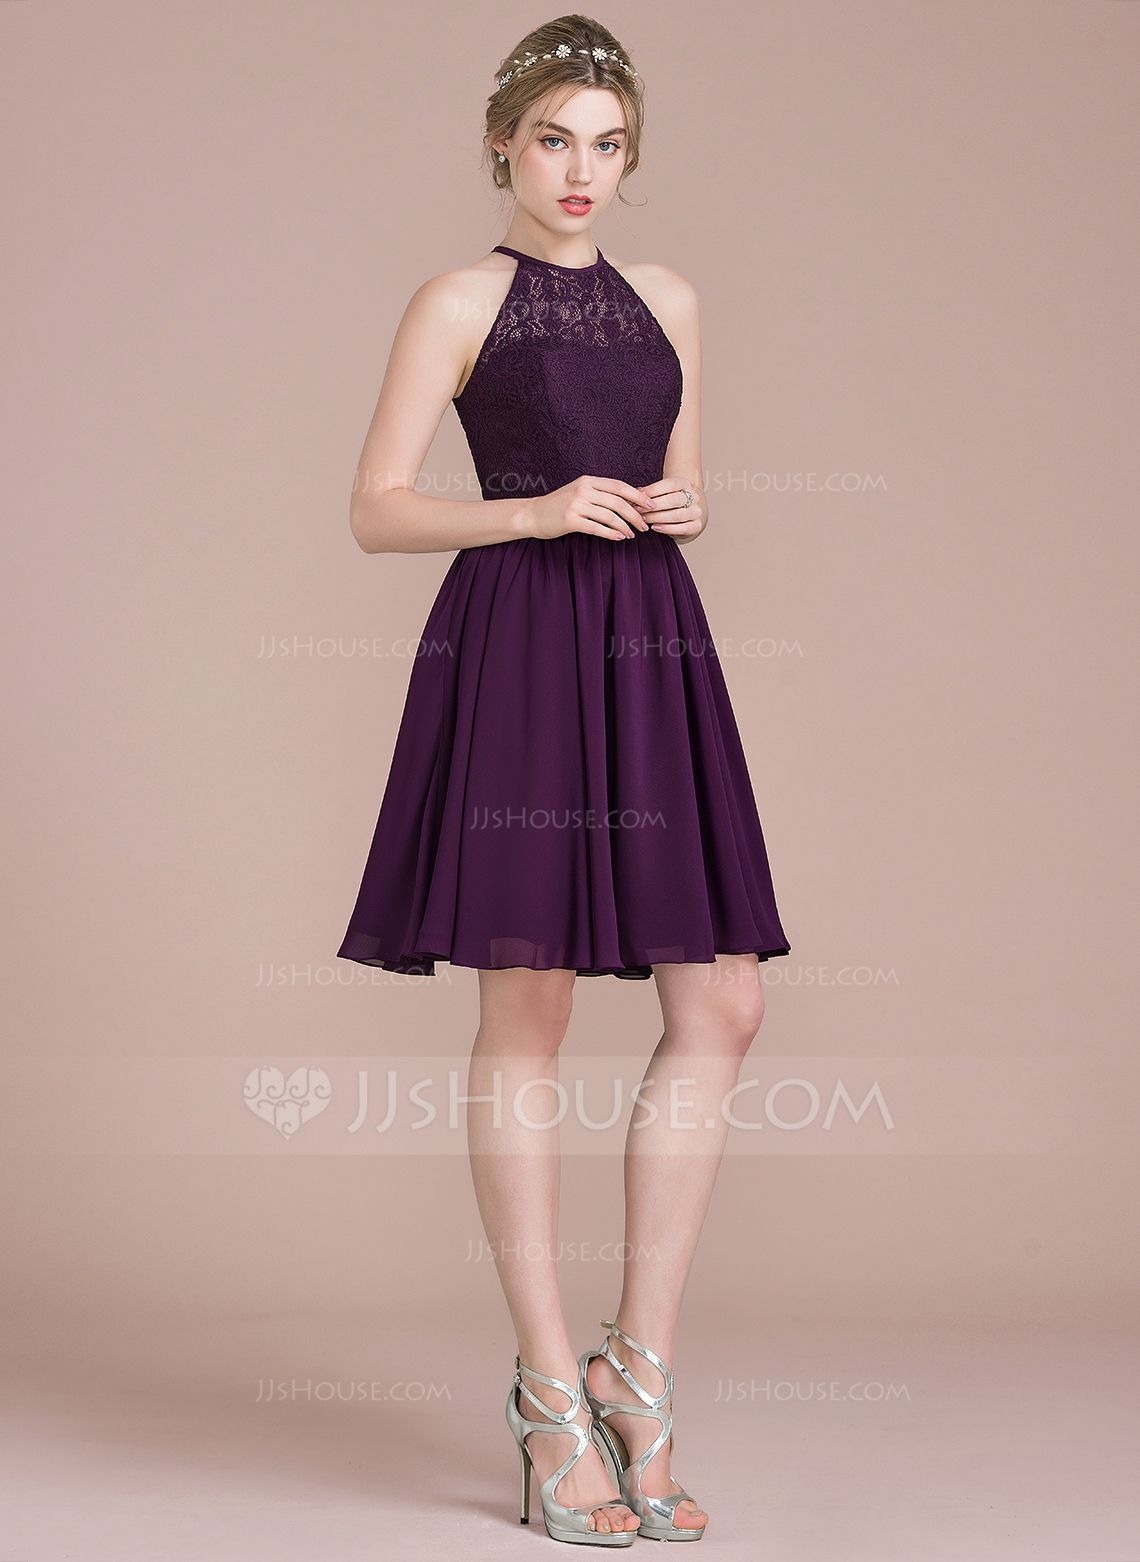 20b037e9535 A-Line Princess Scoop Neck Knee-Length Zipper Up Spaghetti Straps Sleeveless  No Grape Spring Summer Fall Winter General Plus Chiffon Lace Bridesmaid  Dress